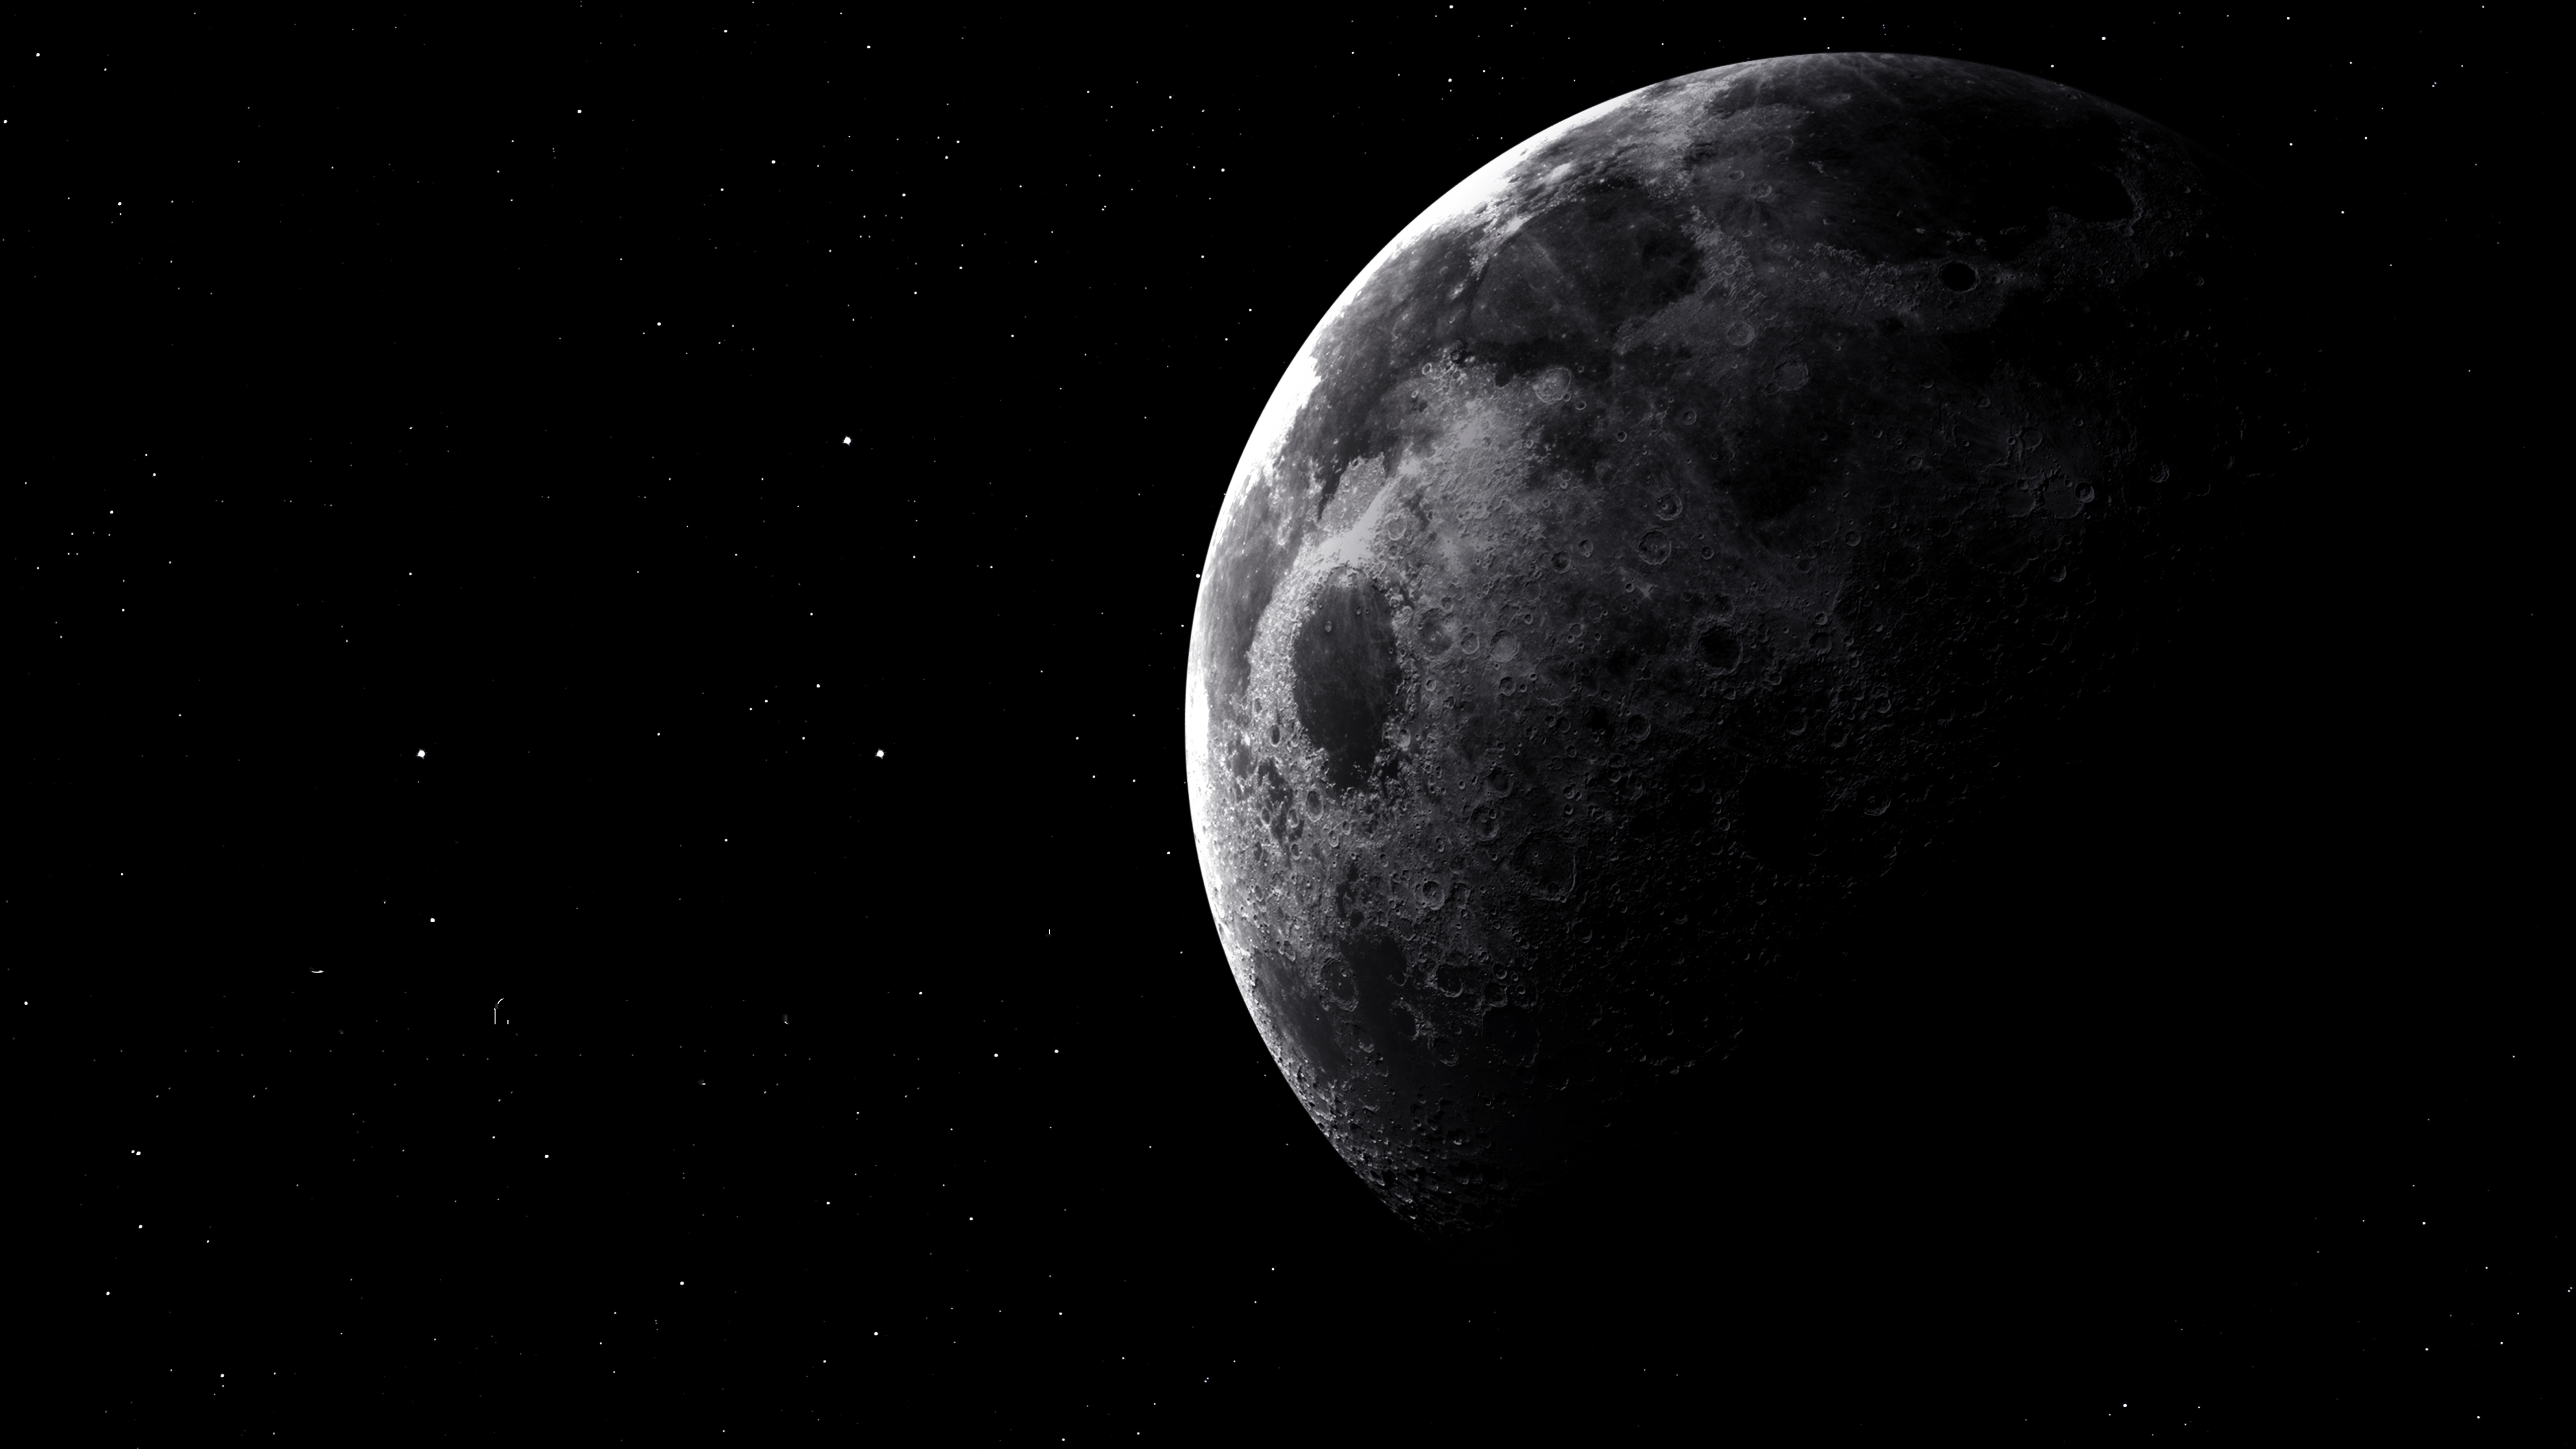 Moon 5k hd world 4k wallpapers images backgrounds - Space moon wallpaper ...